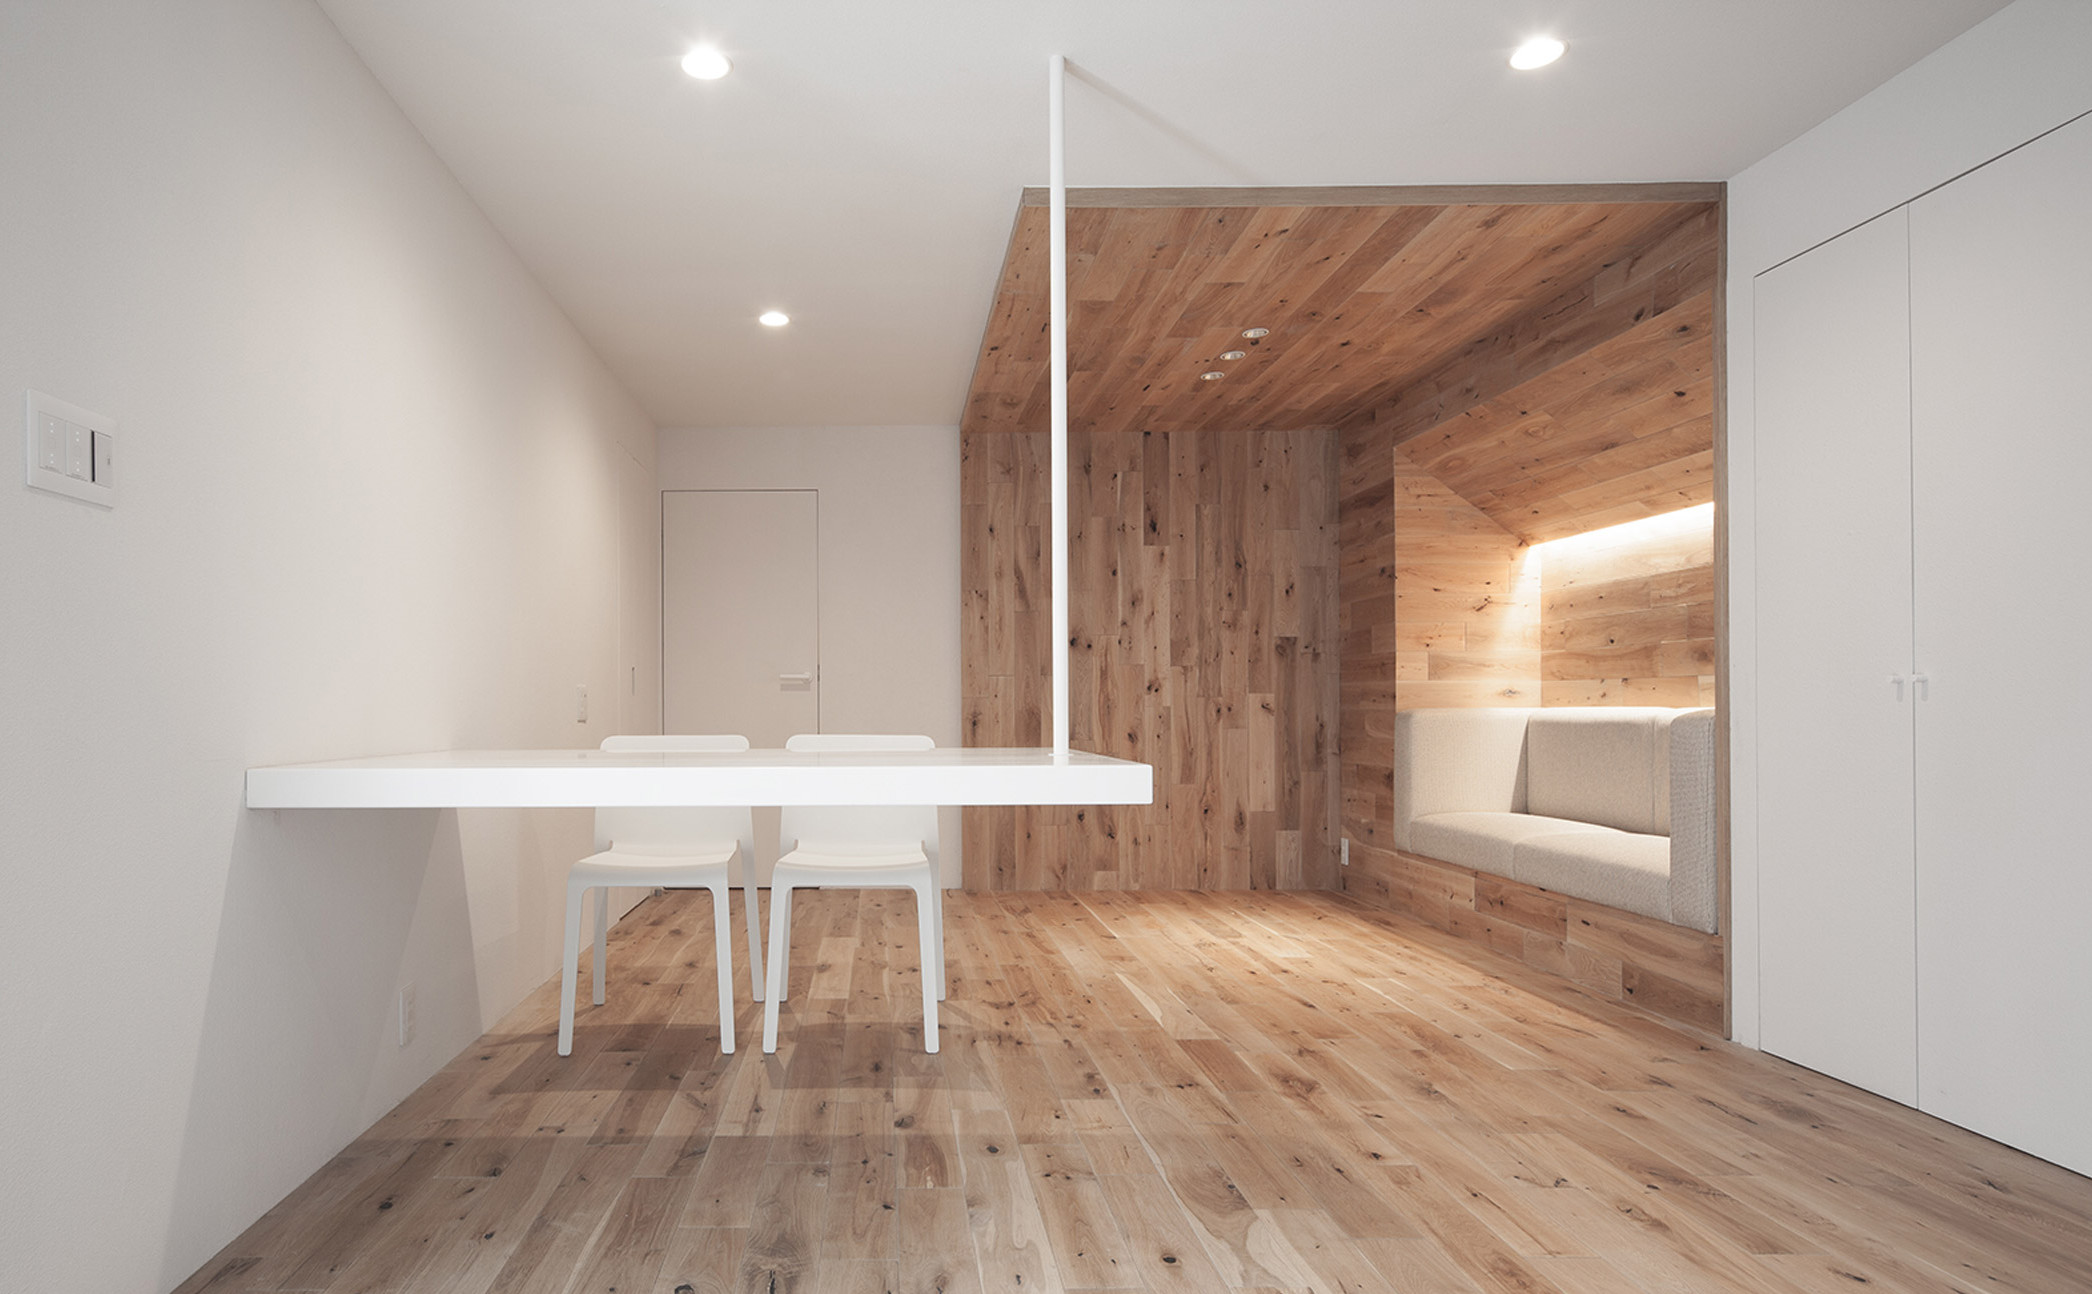 shibuya-apartment-201-202-ogawa-architects-interiors-residential-apartments-holiday-homes-airbnb_dezeen_2364_col_0